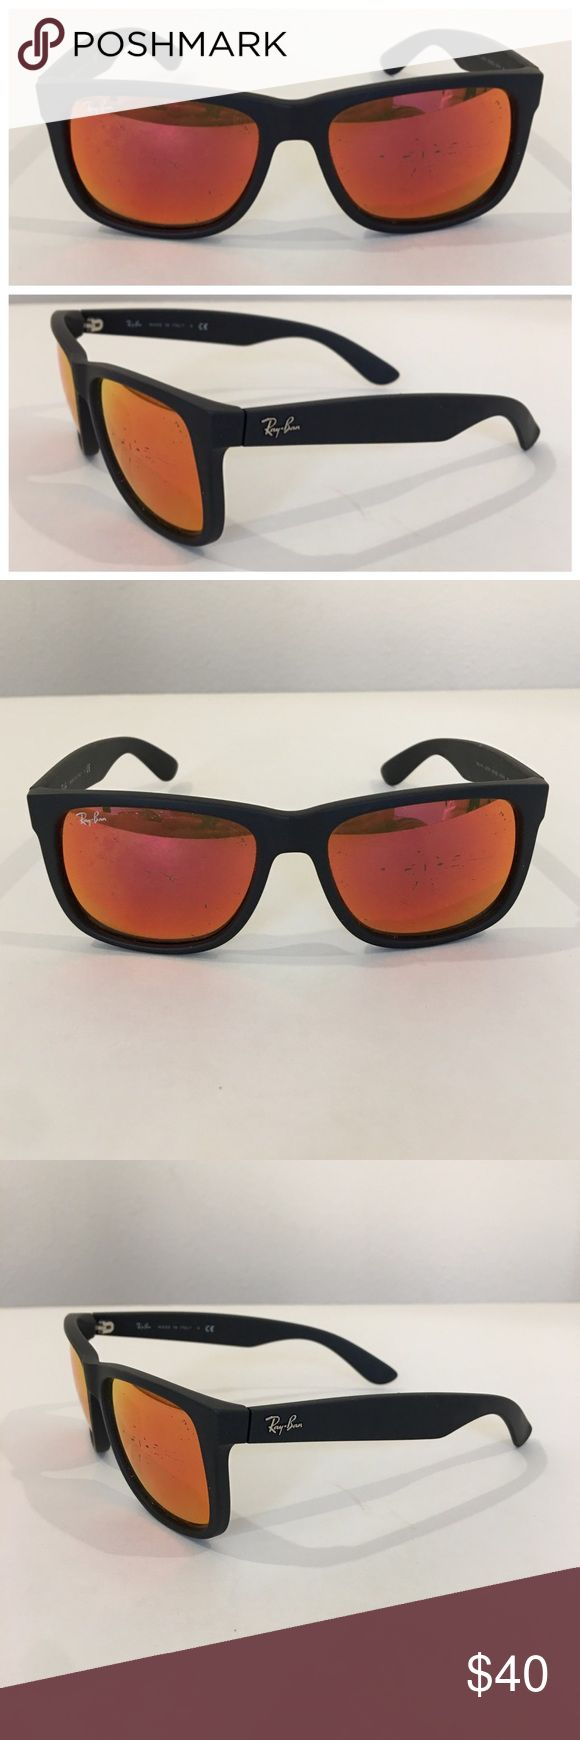 Auth RAY BAN sunglasses, replacement frames only Authentic RAY BAN Justin rubbber frame sunglasses, Model RB 4165, made Italy. Note: selling as replacement frames only as both lens are very scratched. Lens inscribed with the word Ray Ban and marked with s